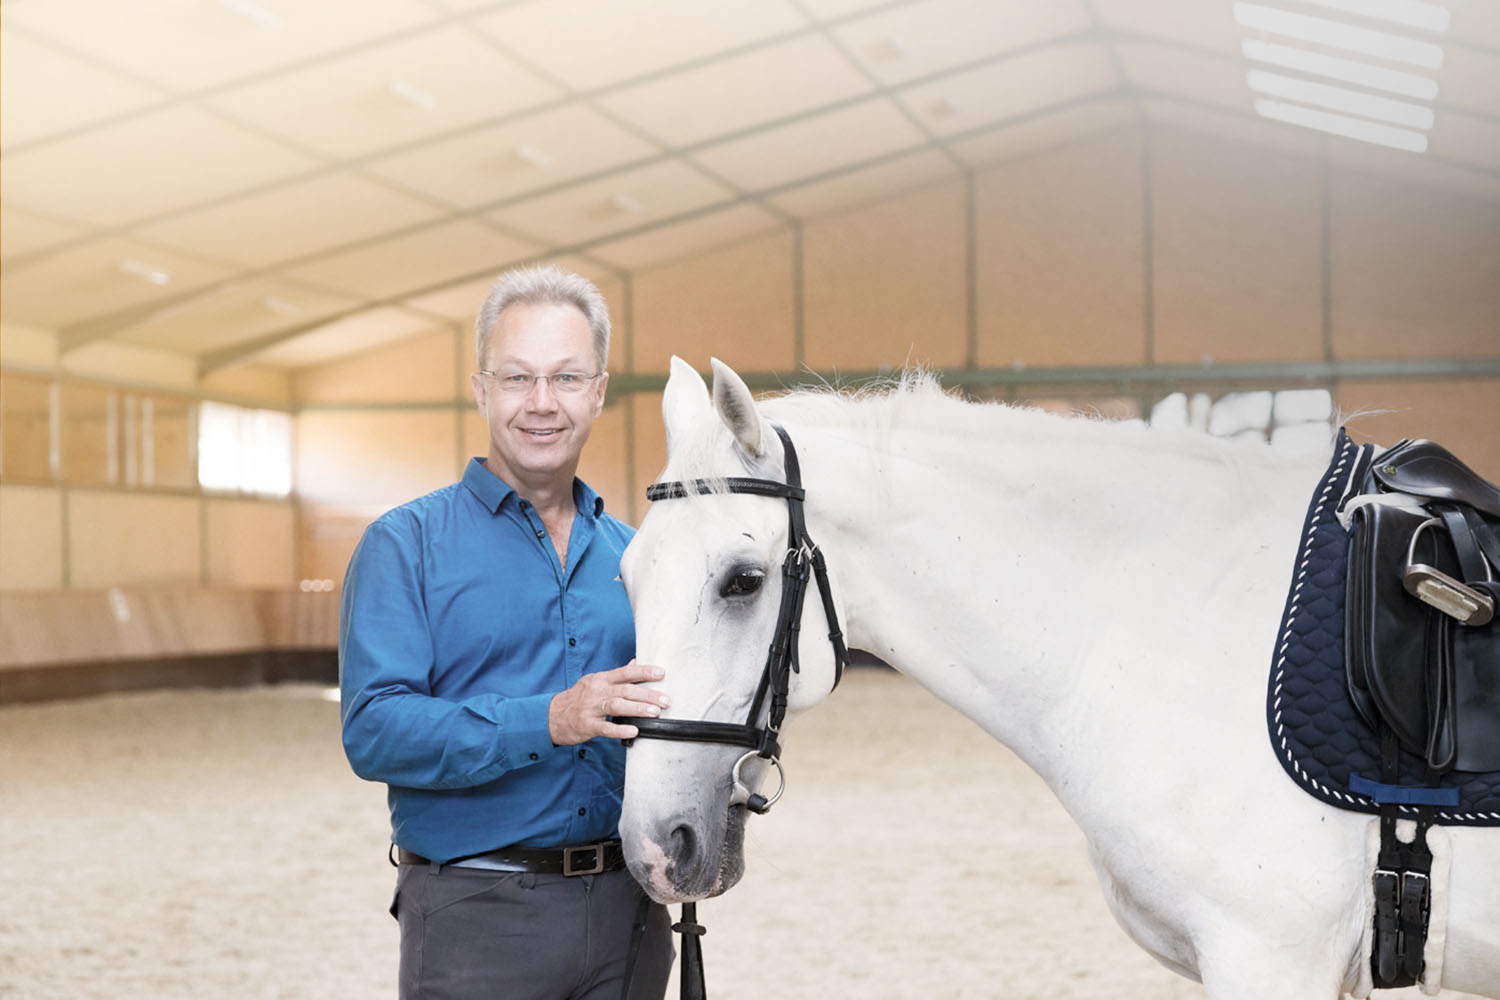 """What brought you to riding and dressage in the first place? - THAT is what should keep you in it now, too.The way we see it, we can all either sit around and complain that we don't like what we see going on. Or we can do something about it by creating the CHANGE we wish to see.Like Mahatma Gandhi said, """"Be the change you wish to see in the world."""""""